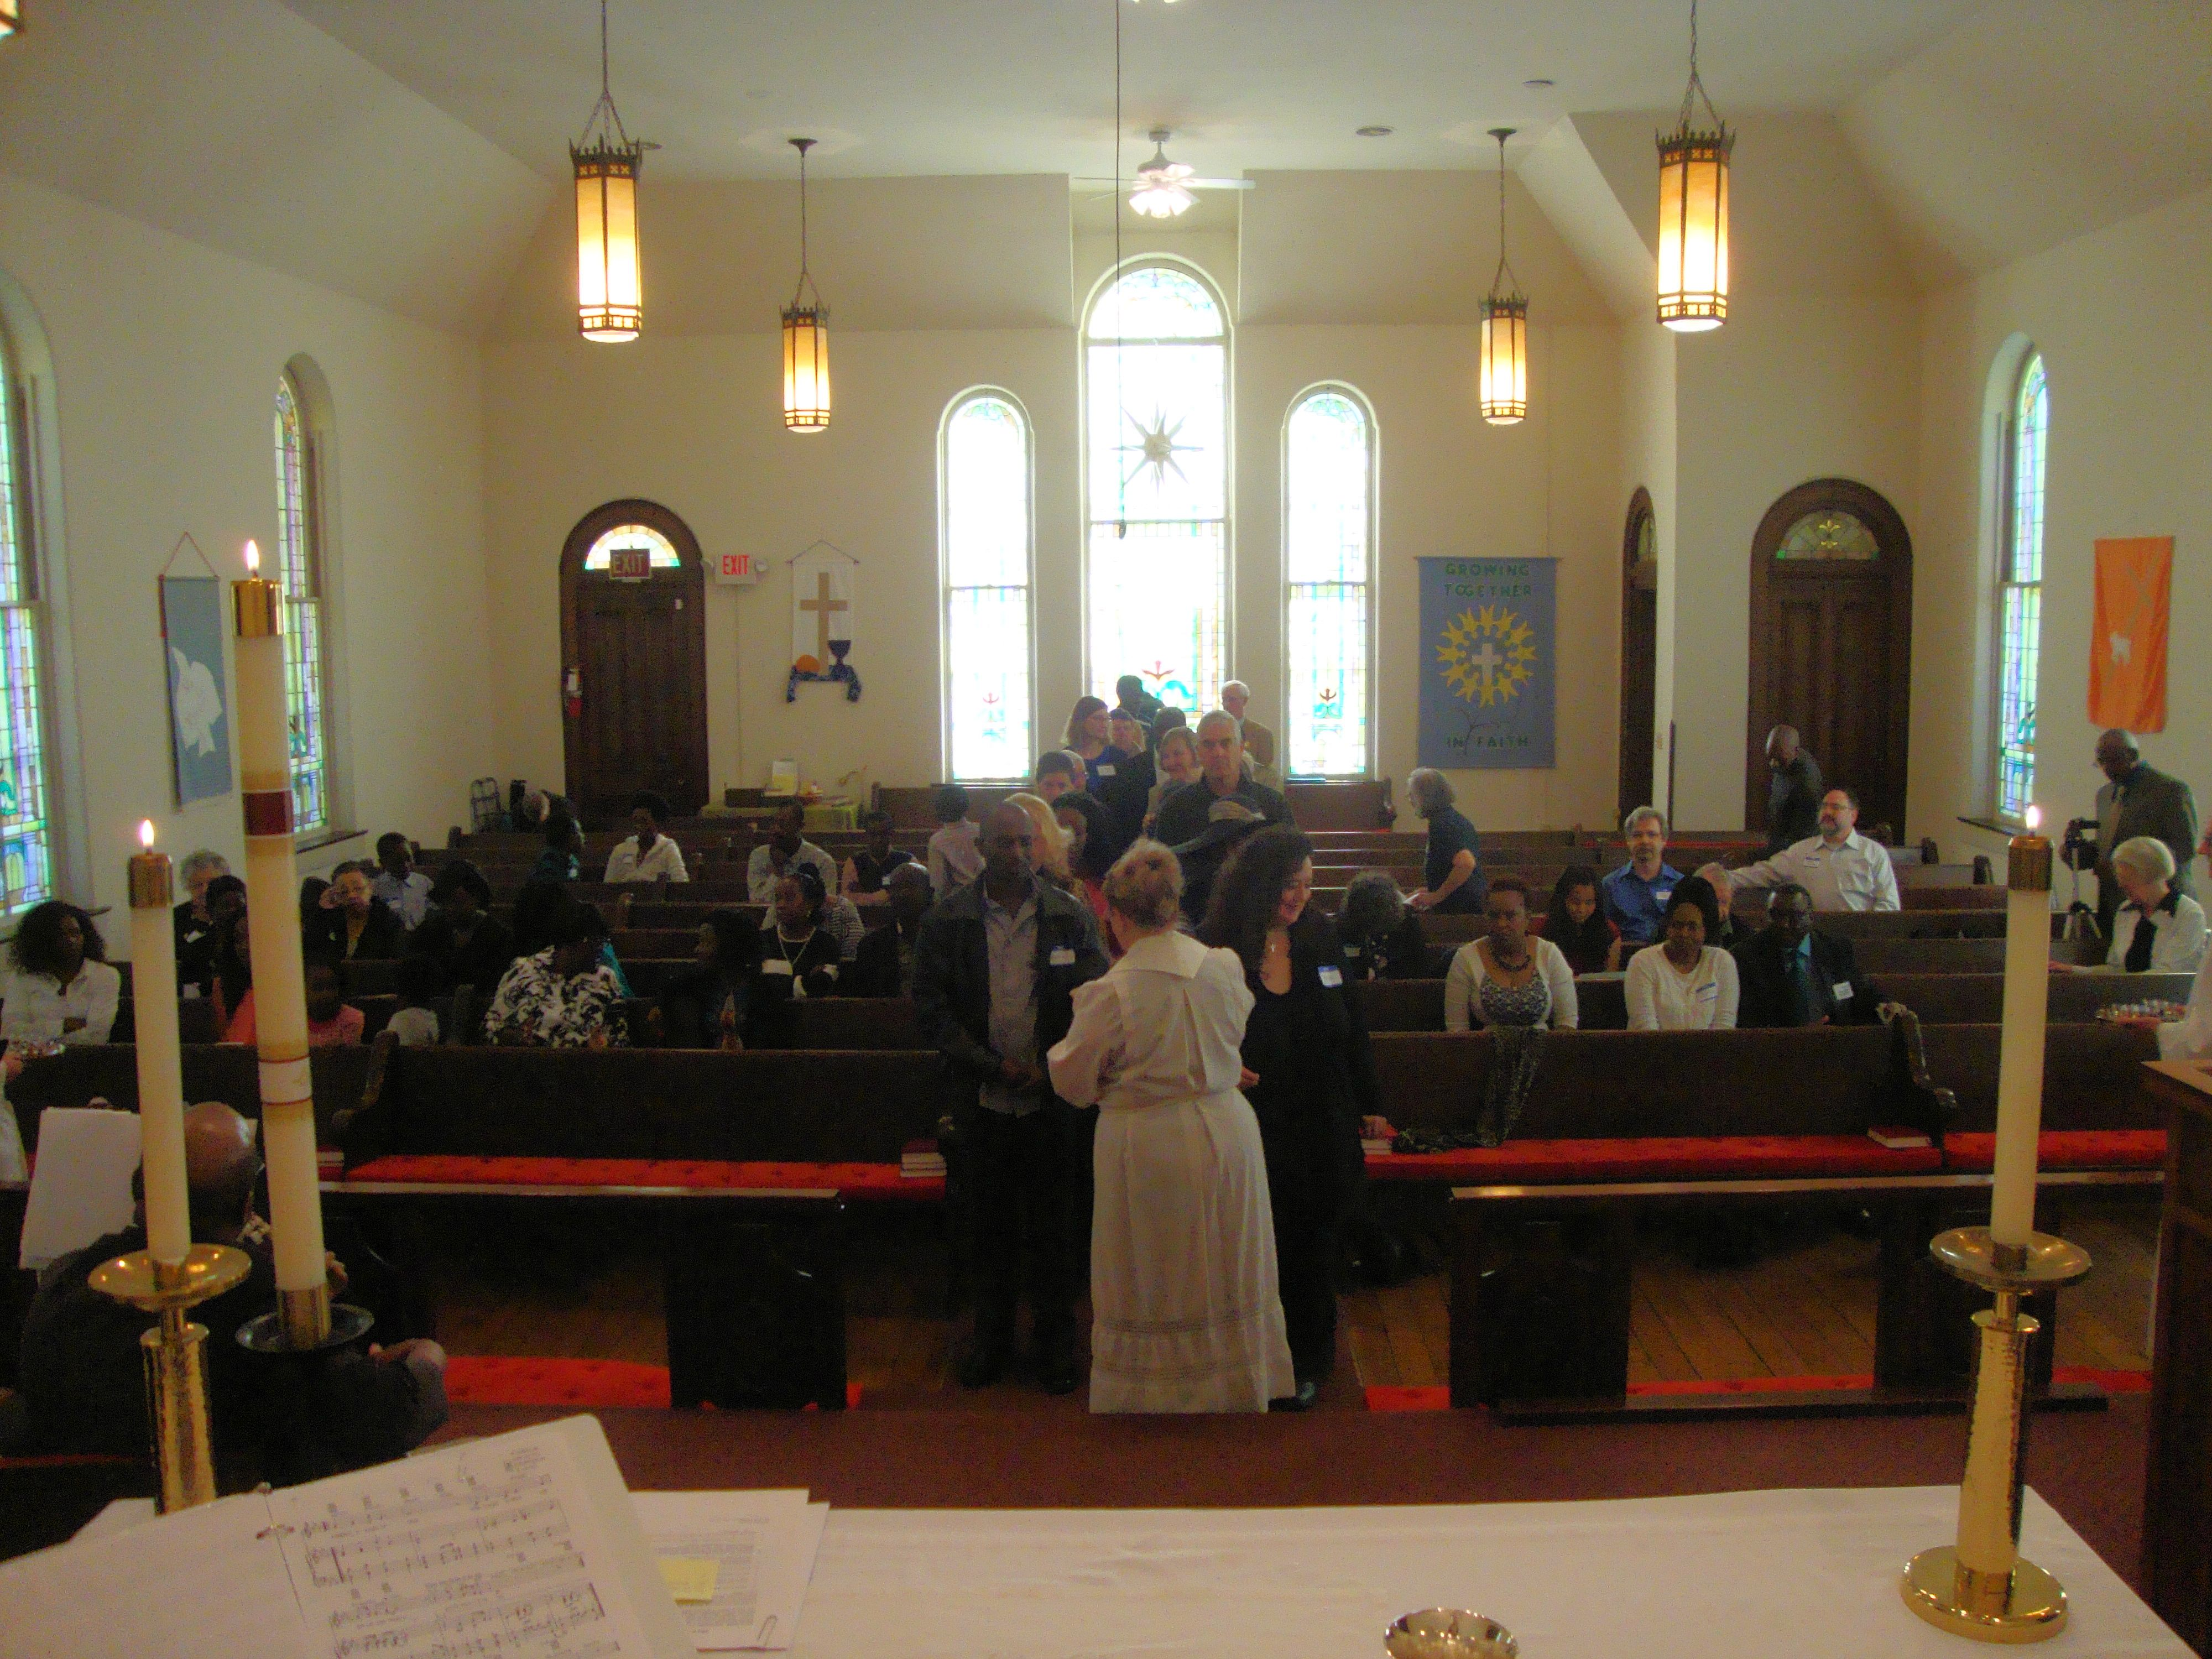 Pastor Bonnie's final service at Salem